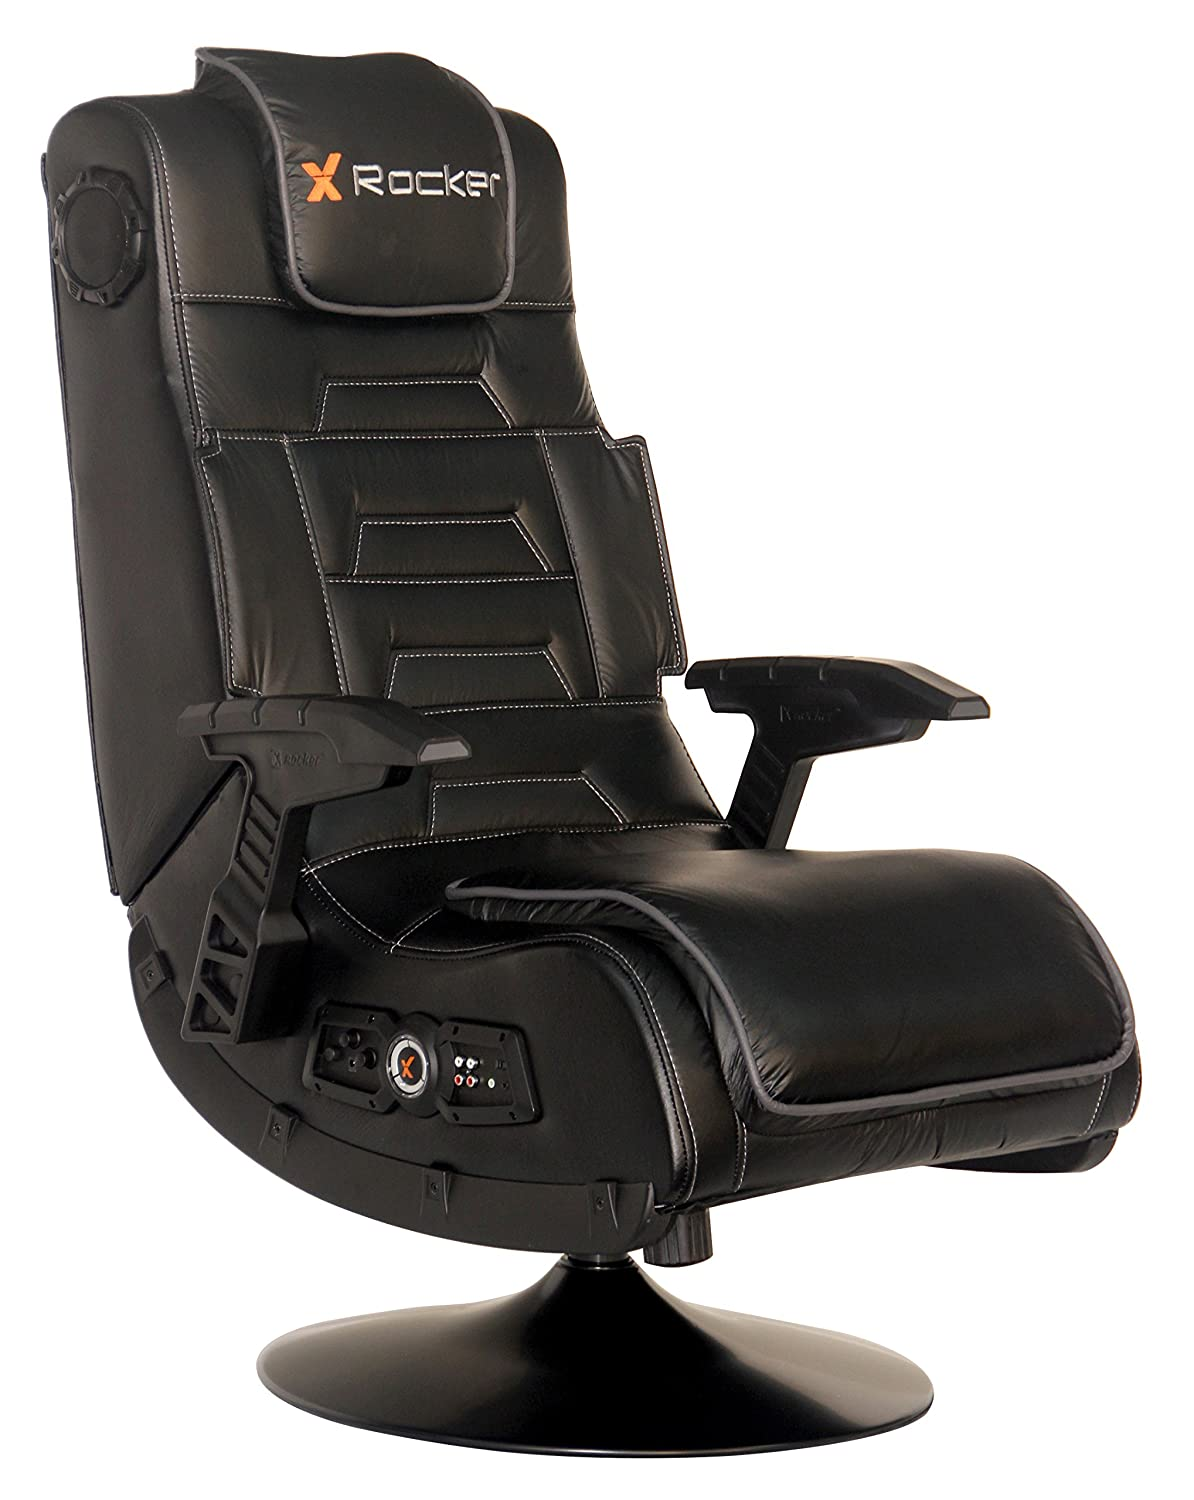 Sensational Amazon Com X Rocker Pro Series 2 1 Vibrating Black Leather Inzonedesignstudio Interior Chair Design Inzonedesignstudiocom